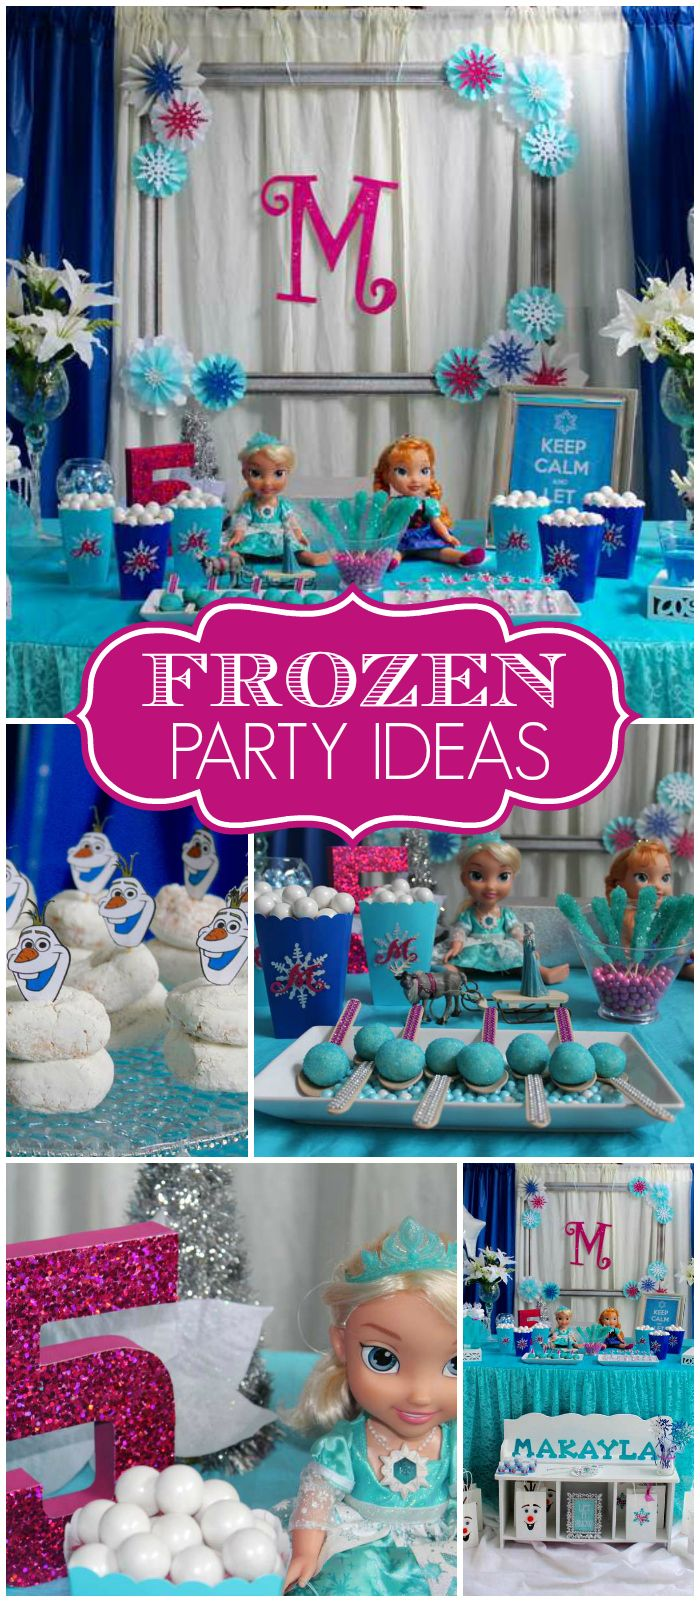 289 best Frozen birthday party images on Pinterest Birthdays